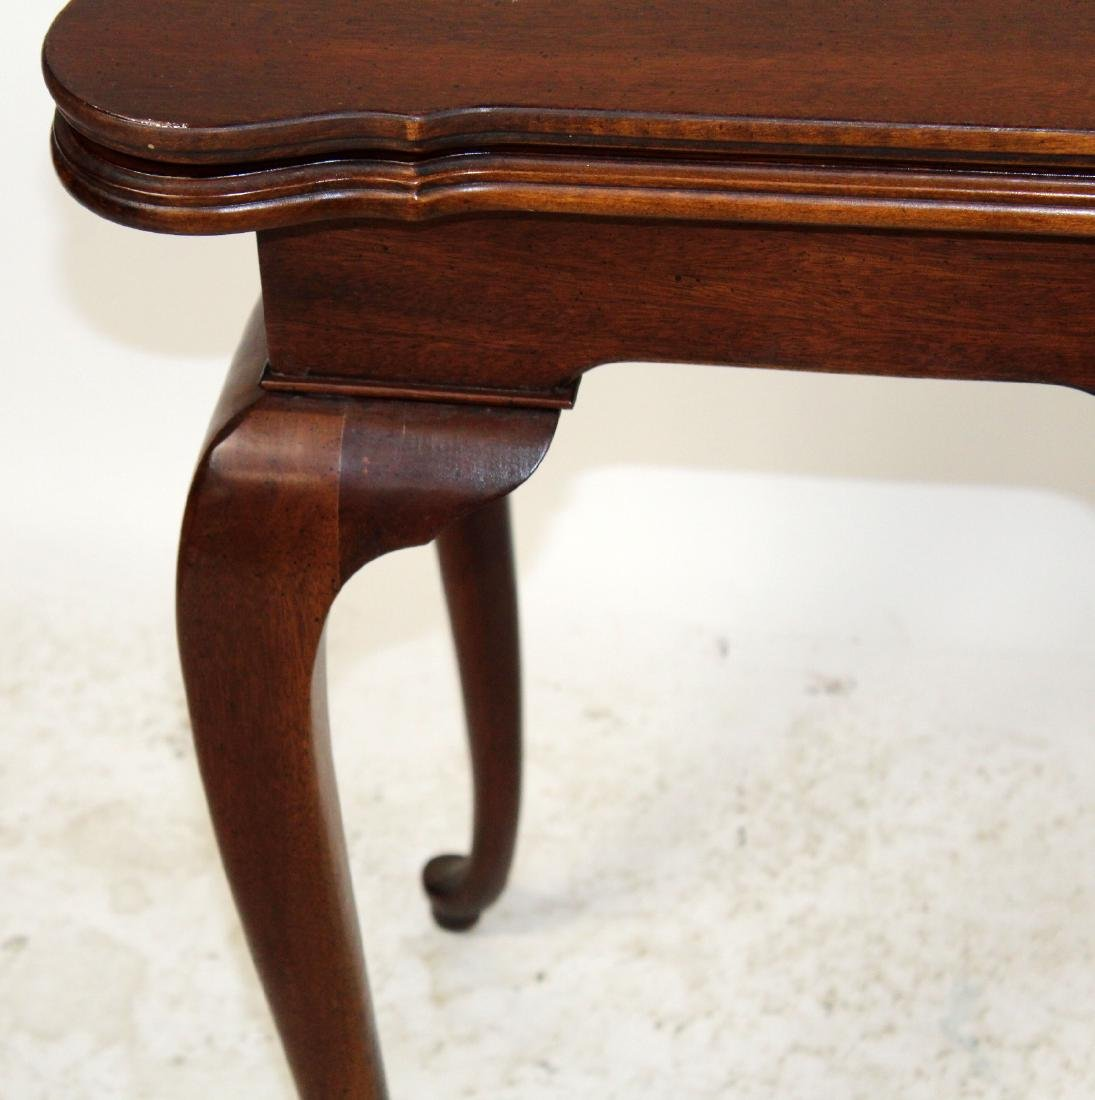 Mahogany console game table with shell carving - 4